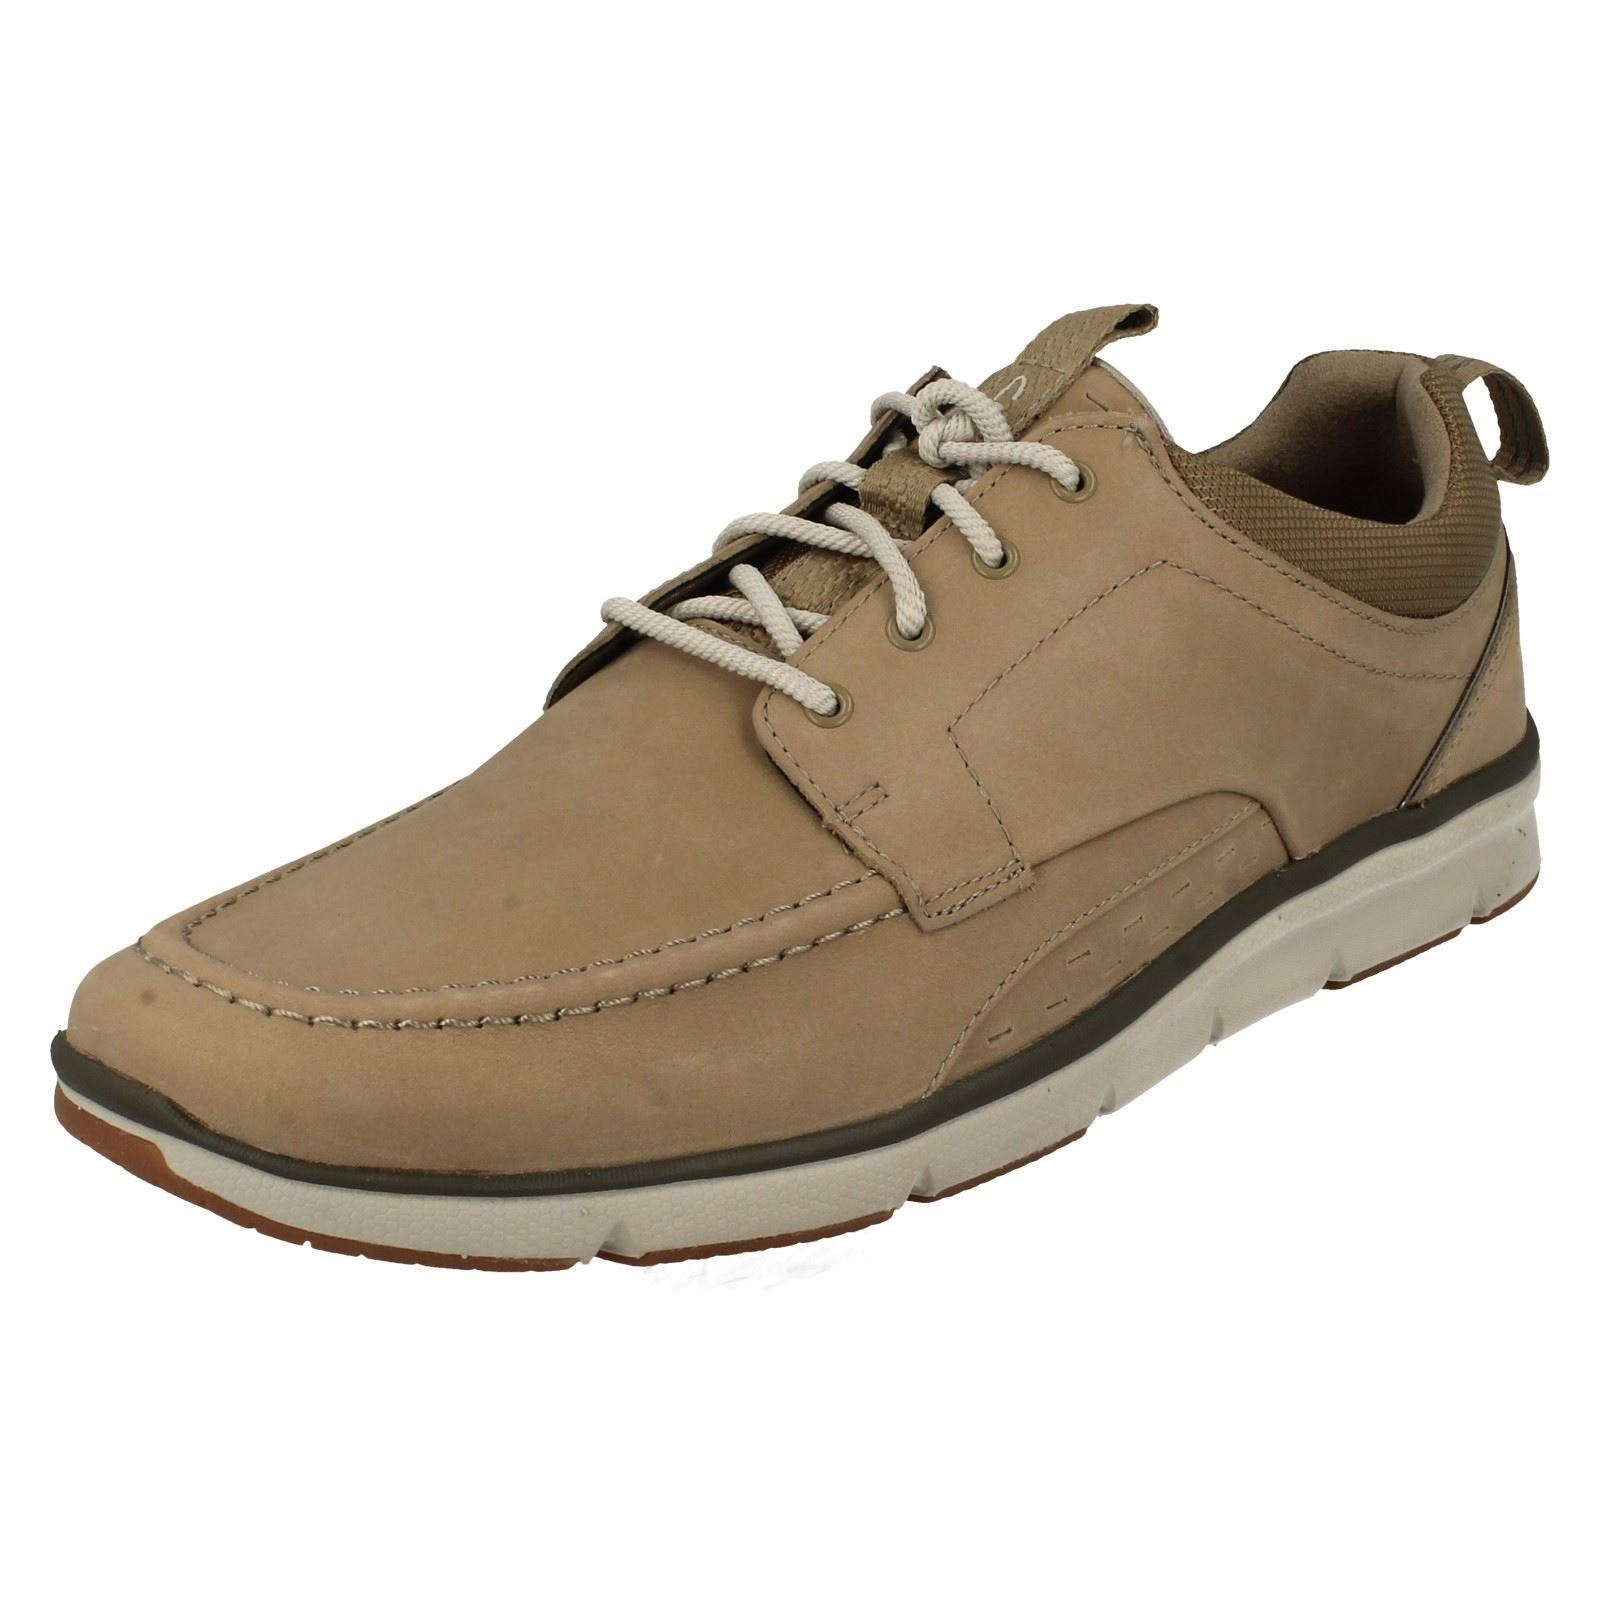 West Bay Clarks Shoes